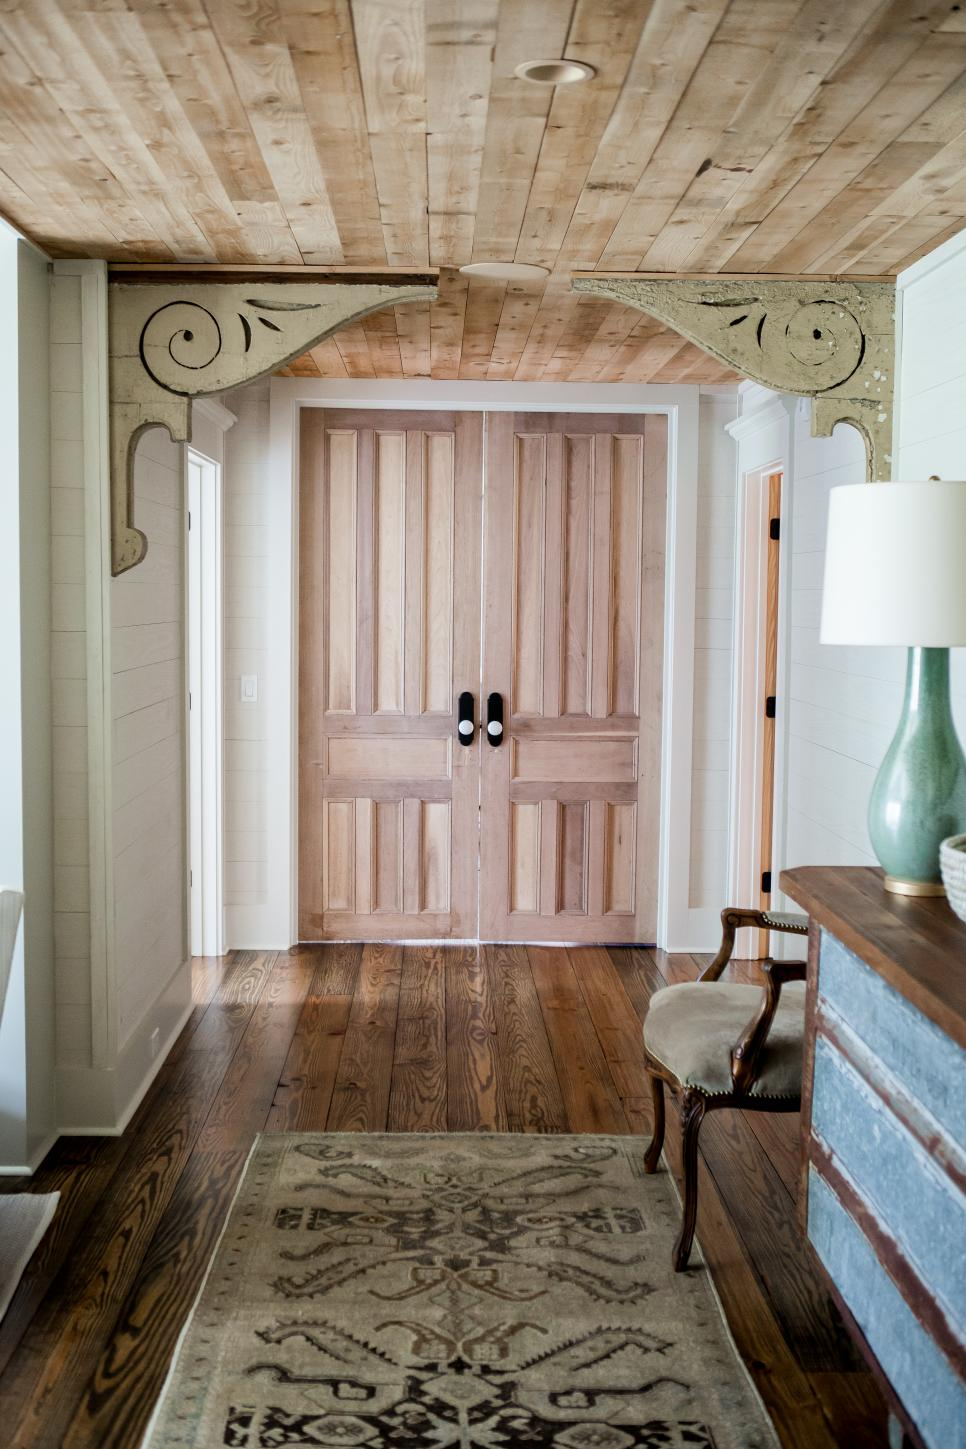 country-style entryway with reclaimed wood ceiling